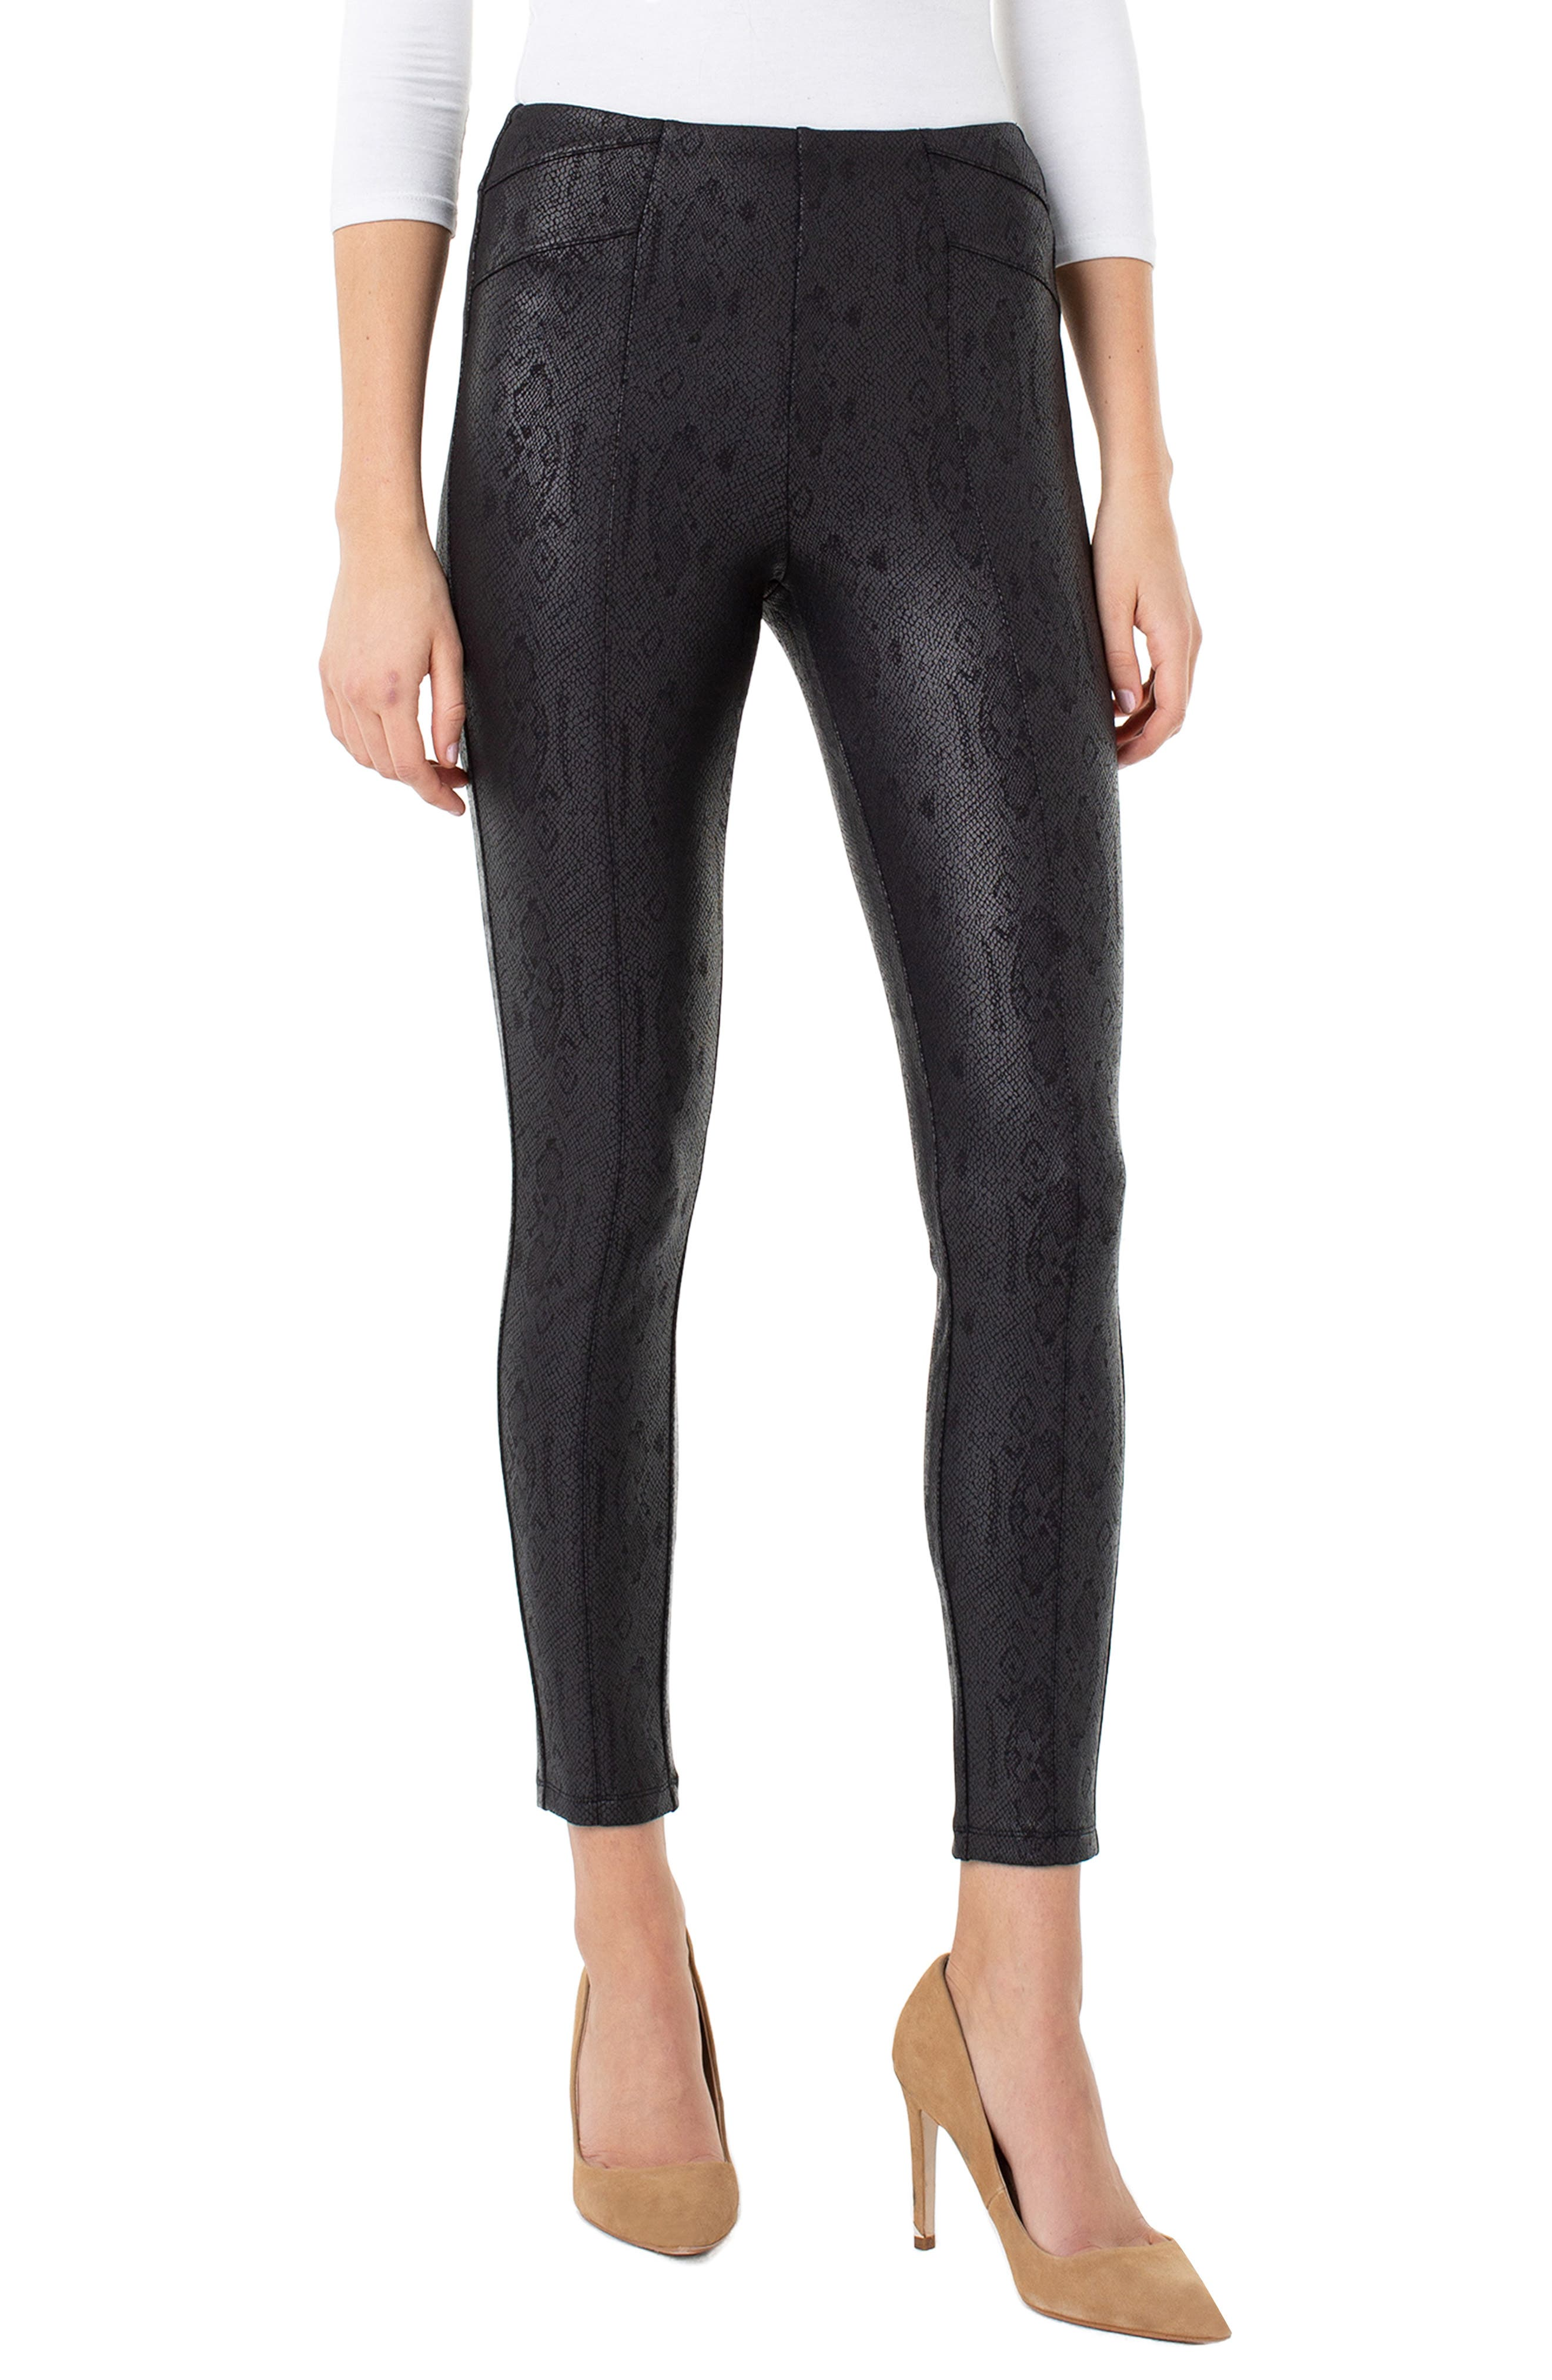 Reese High Waist Coated Snake Print Ankle Leggings by Liverpool